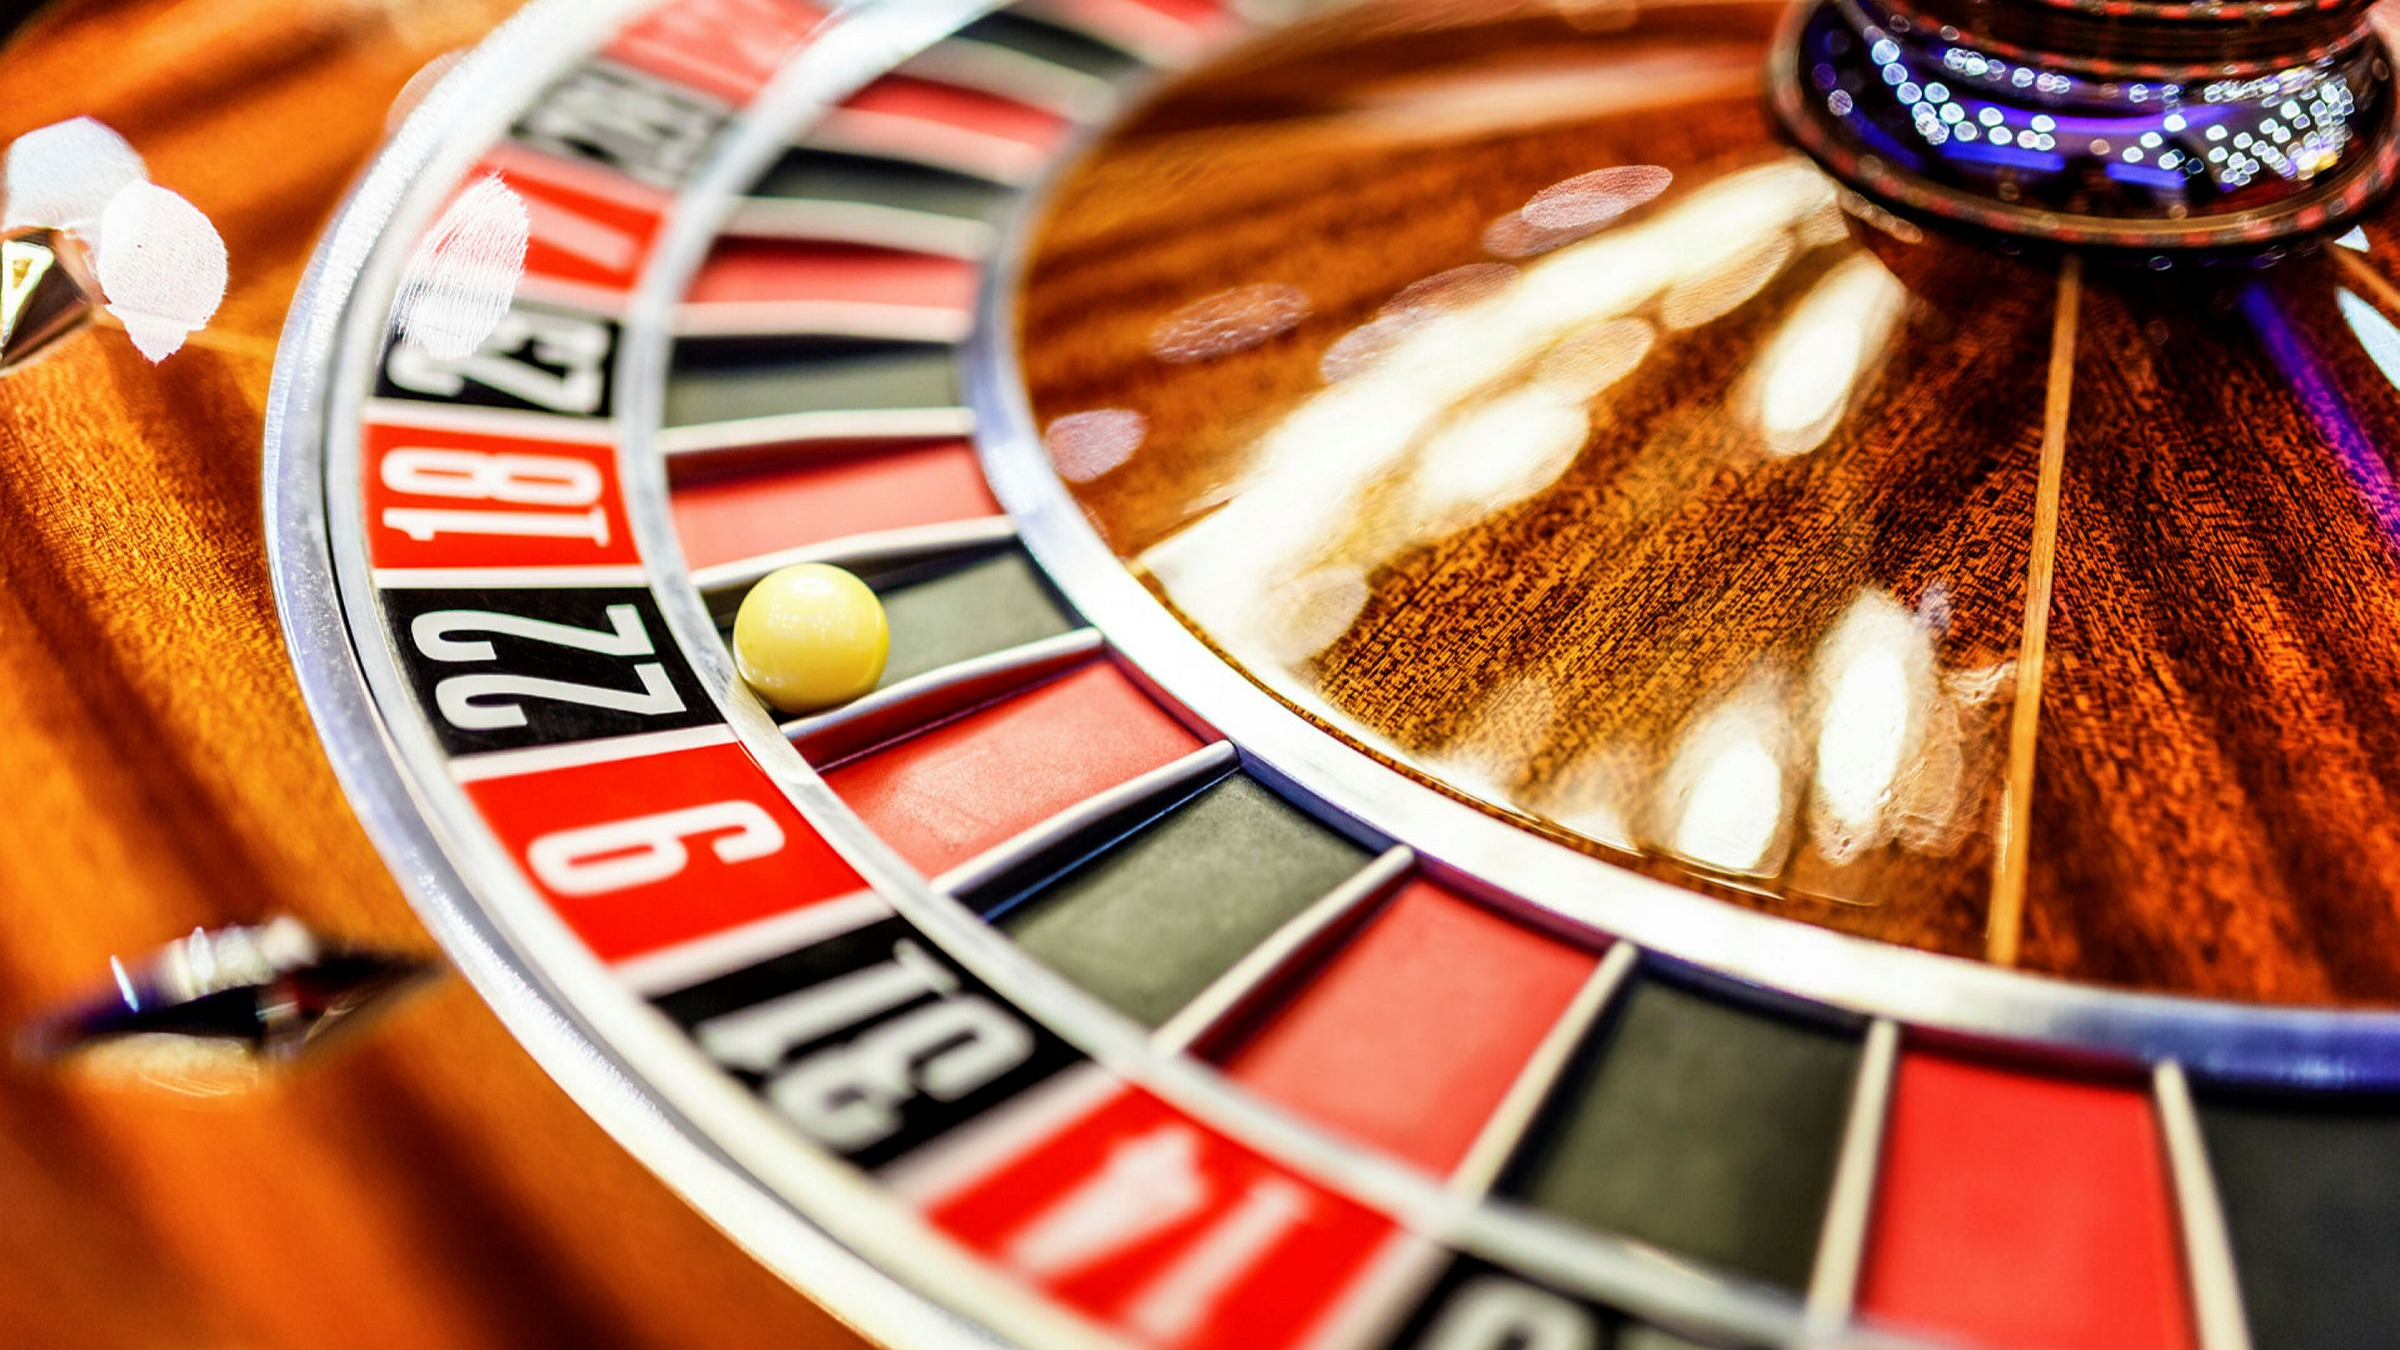 Caesars Entertainment fined £13m in crackdown on gambling addiction |  Financial Times